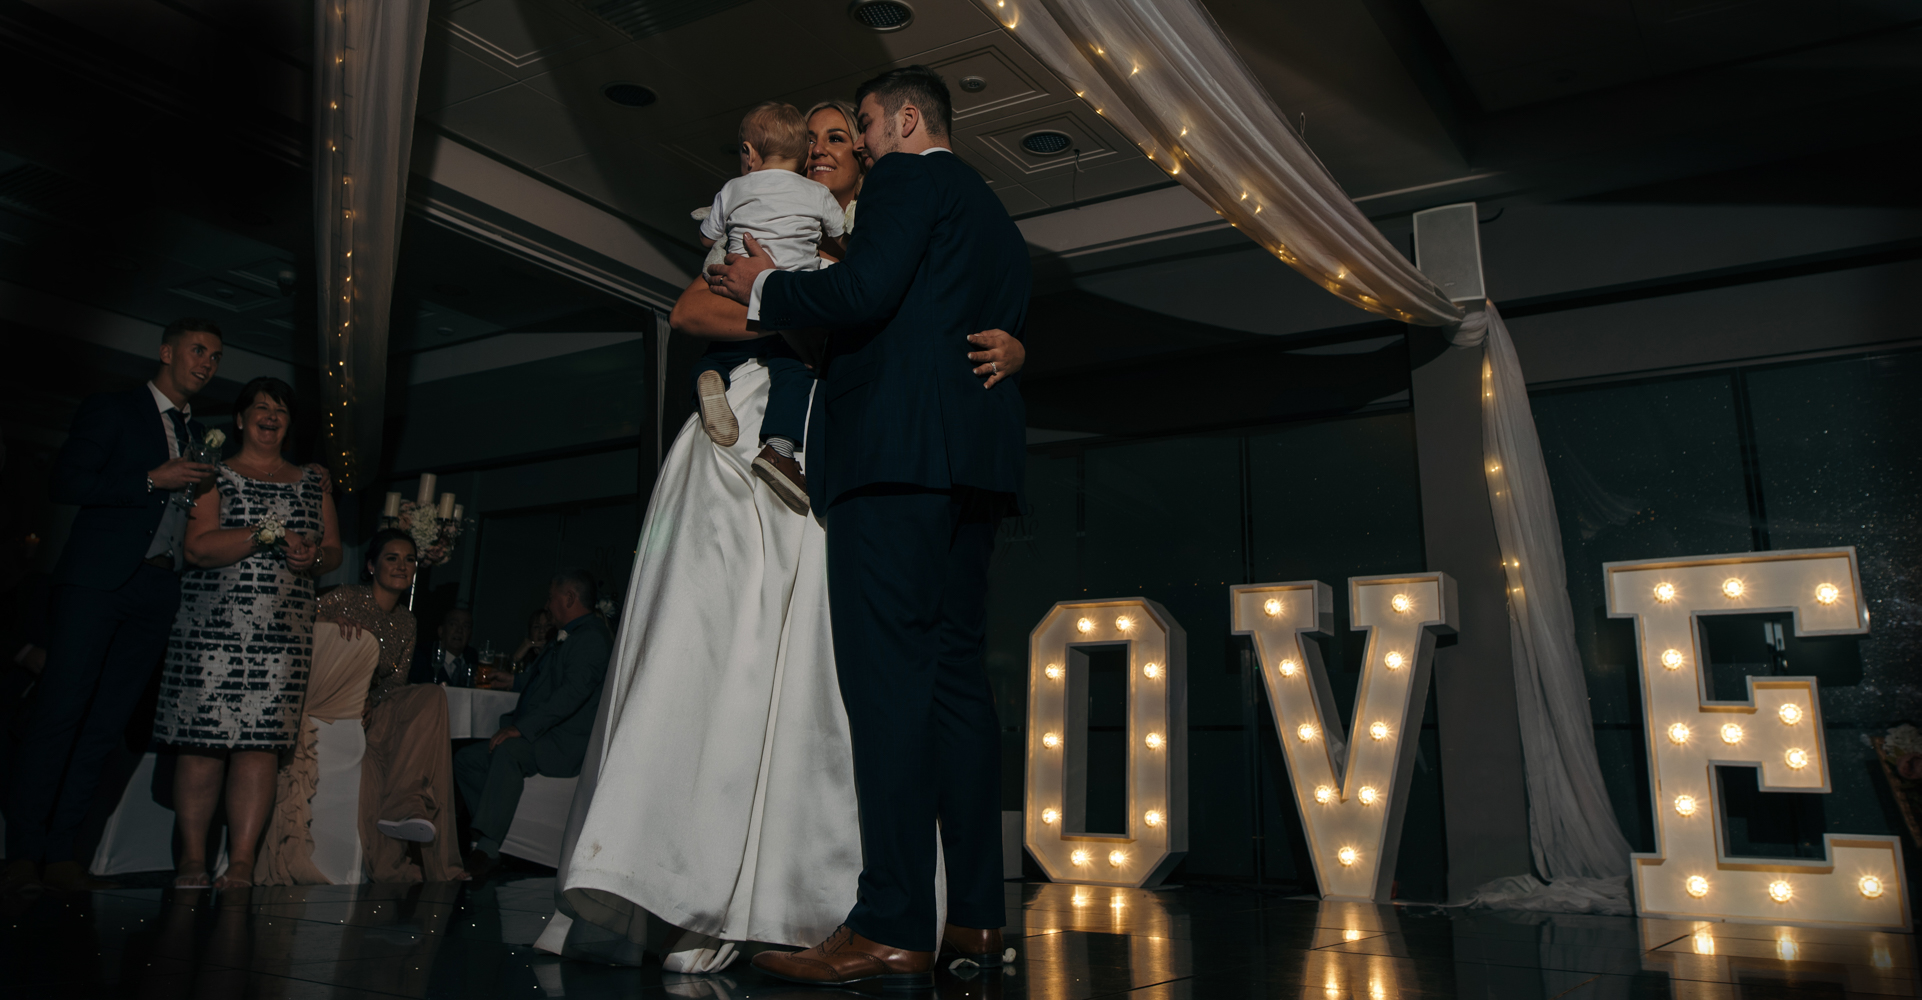 The bride and groom during the first dance with their little boy